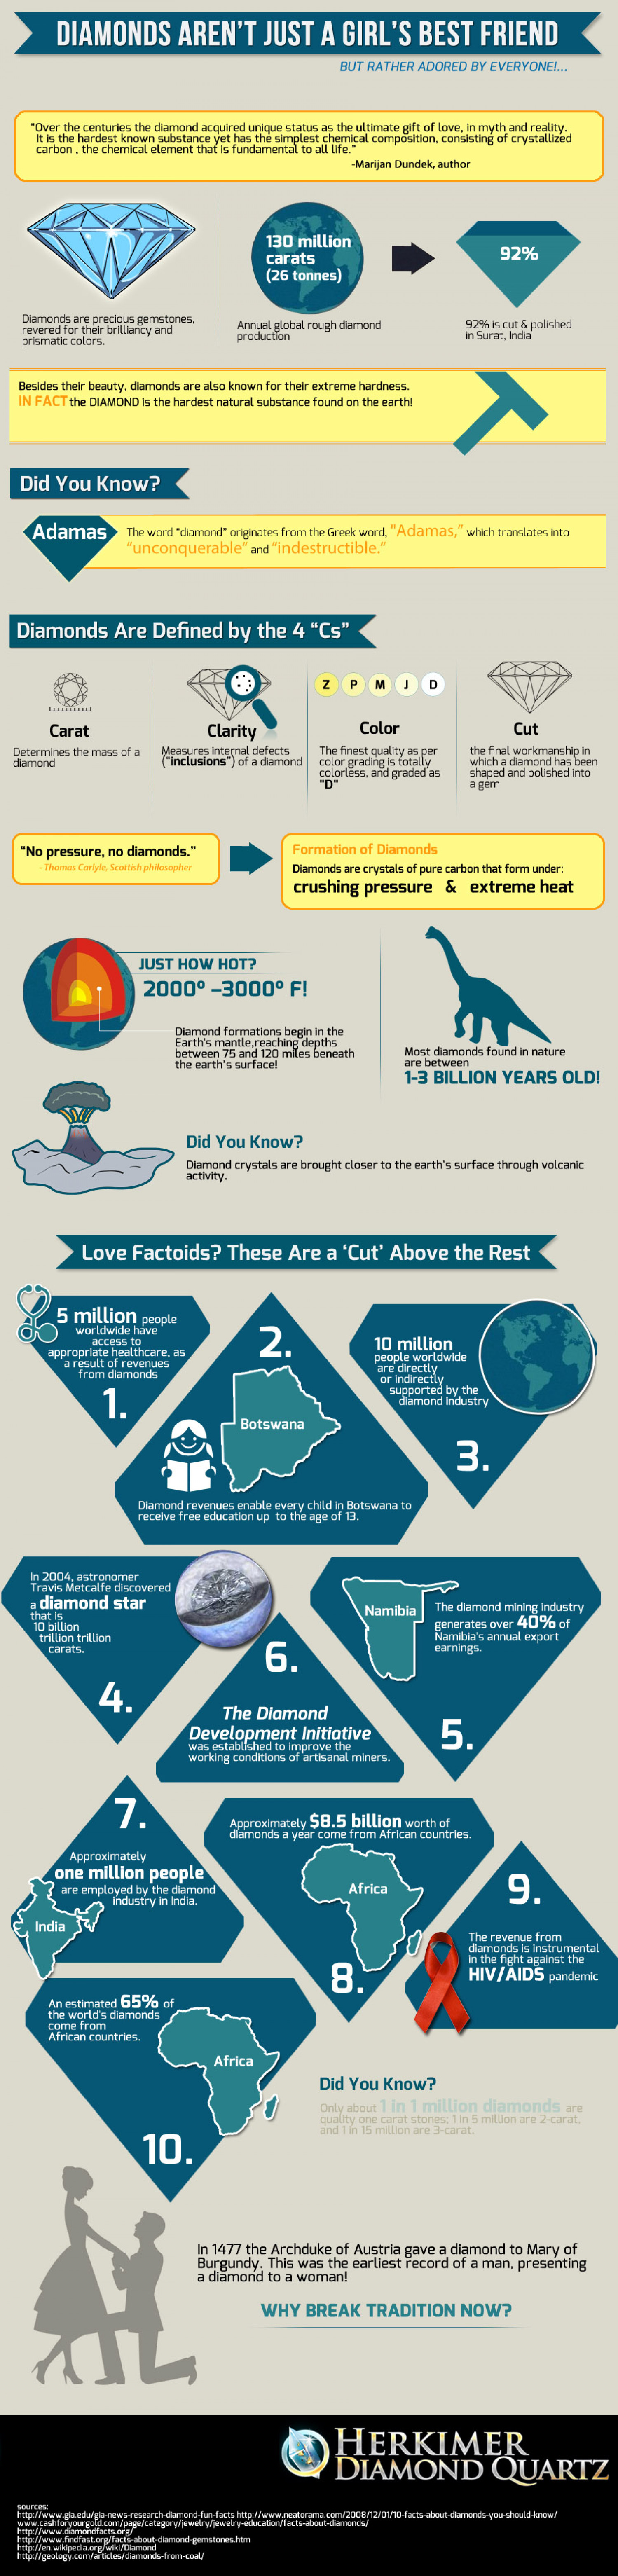 ...Diamonds Aren't Just a Girl's Best Friend... Infographic